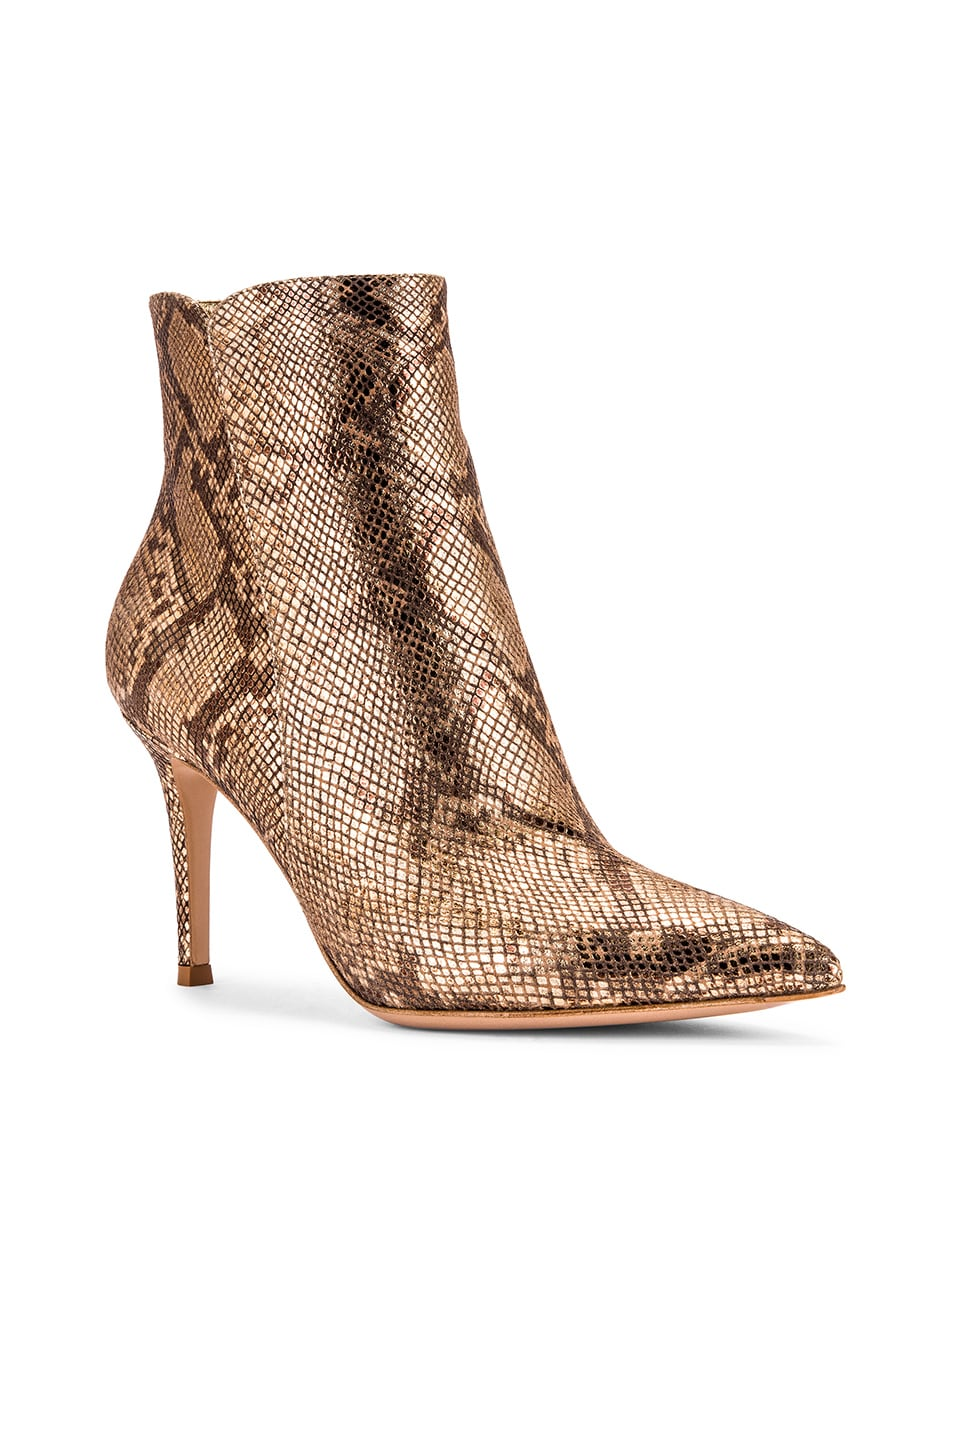 Image 2 of Gianvito Rossi Dallas Ankle Booties in Mekong